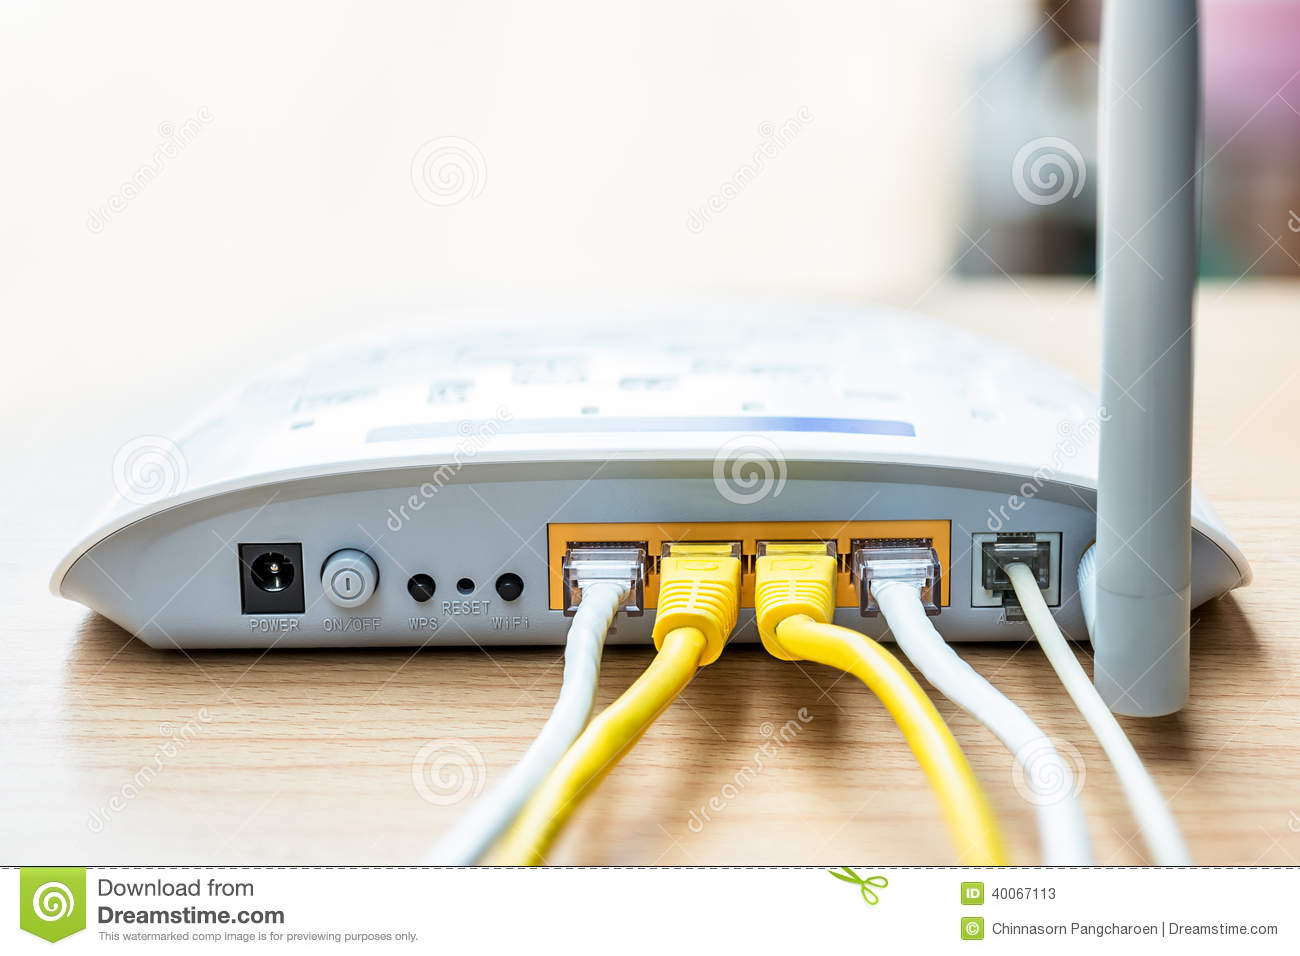 how to connect to home router